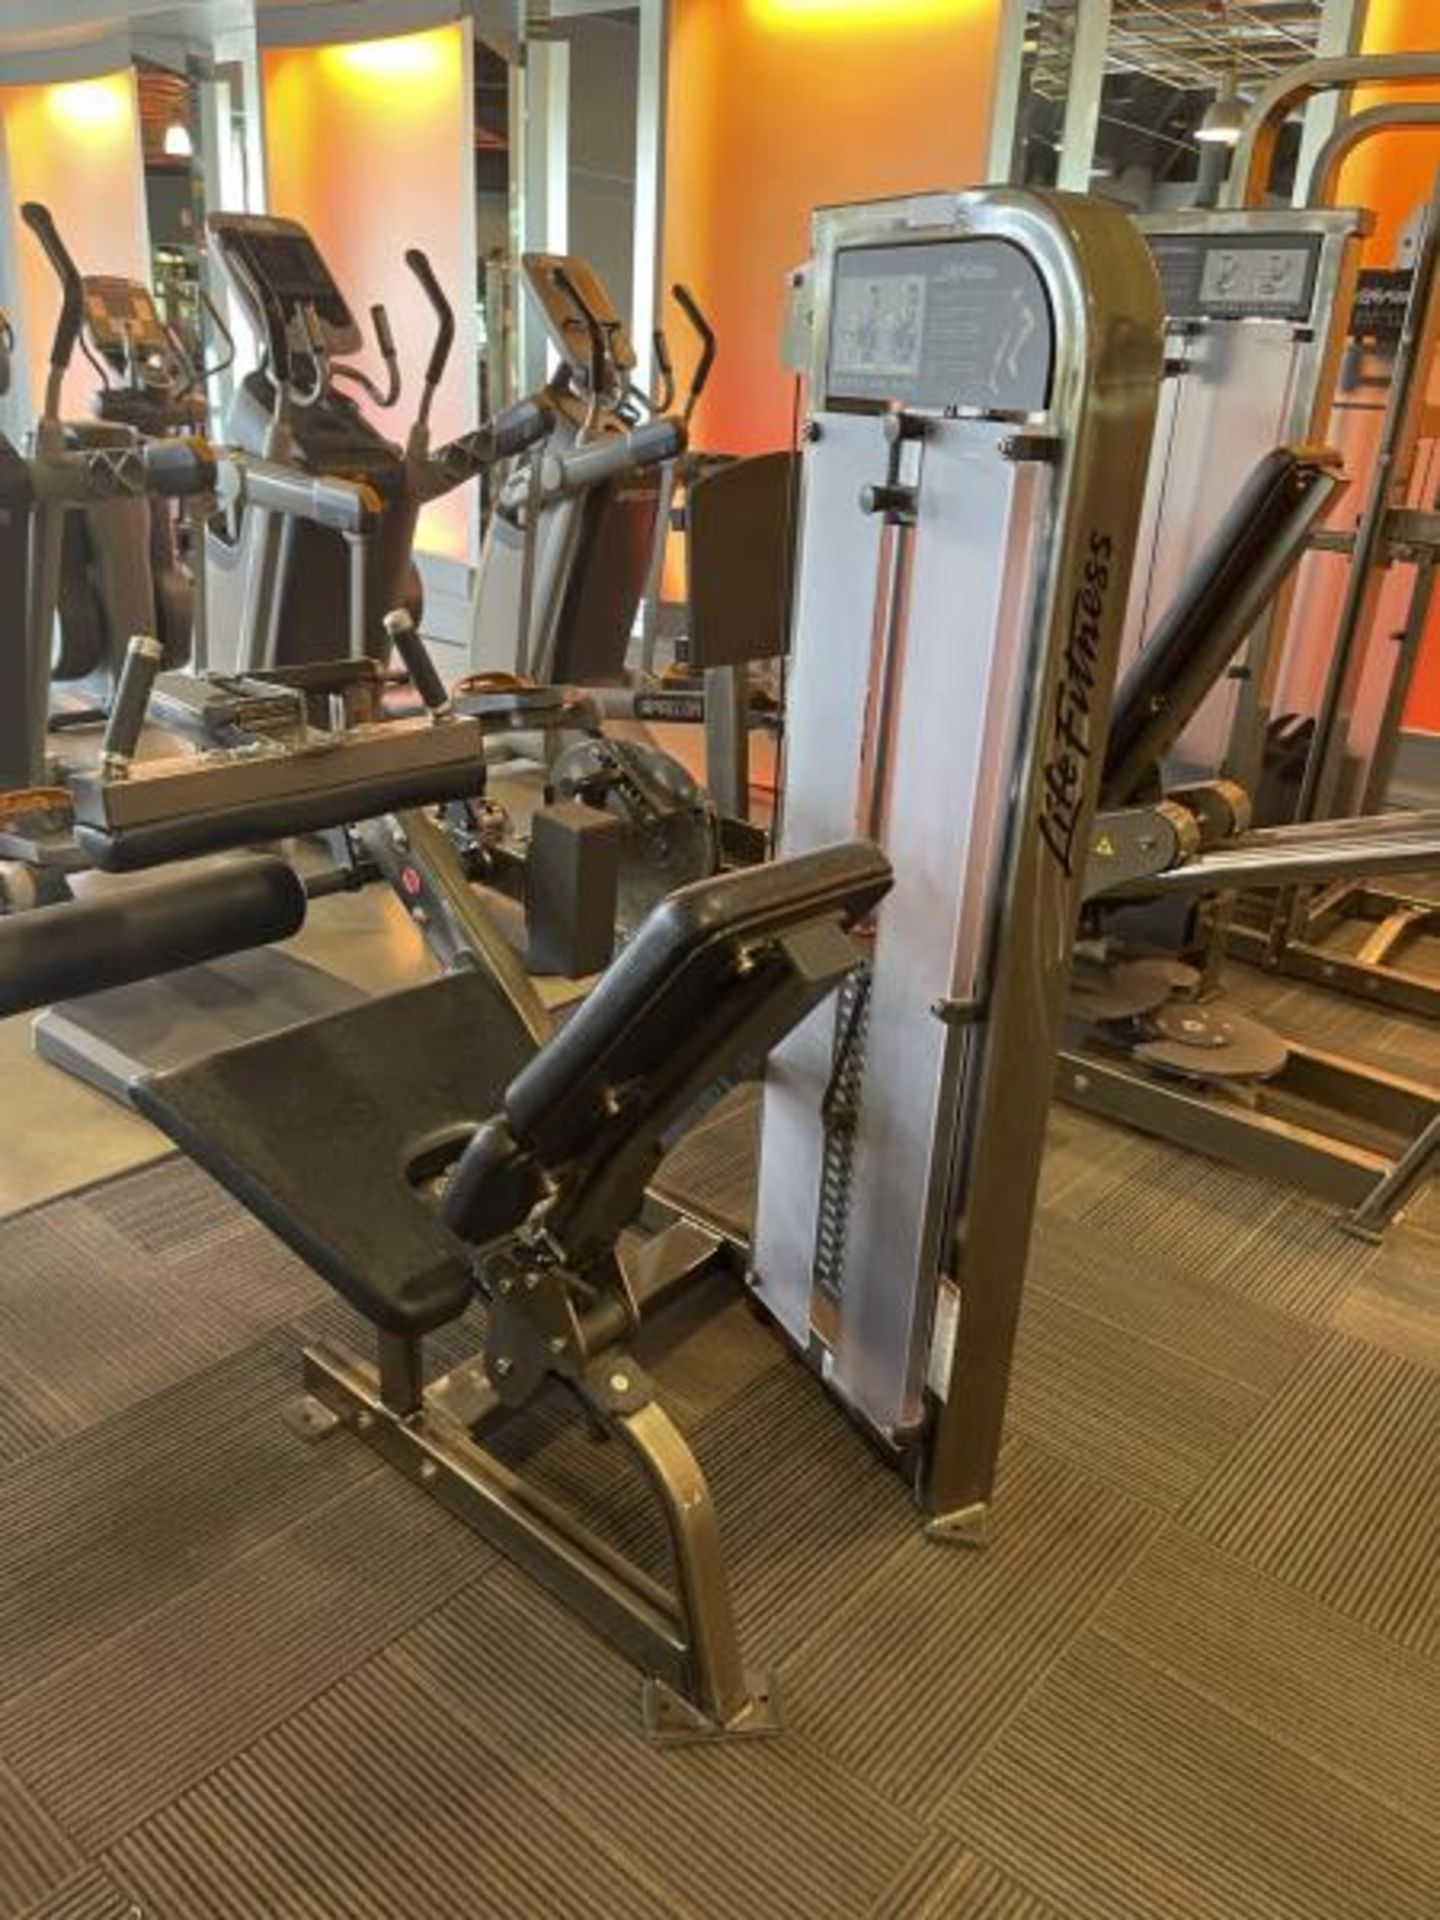 Life Fitness Seated Leg Curl M: PSSLCSE - Image 6 of 6